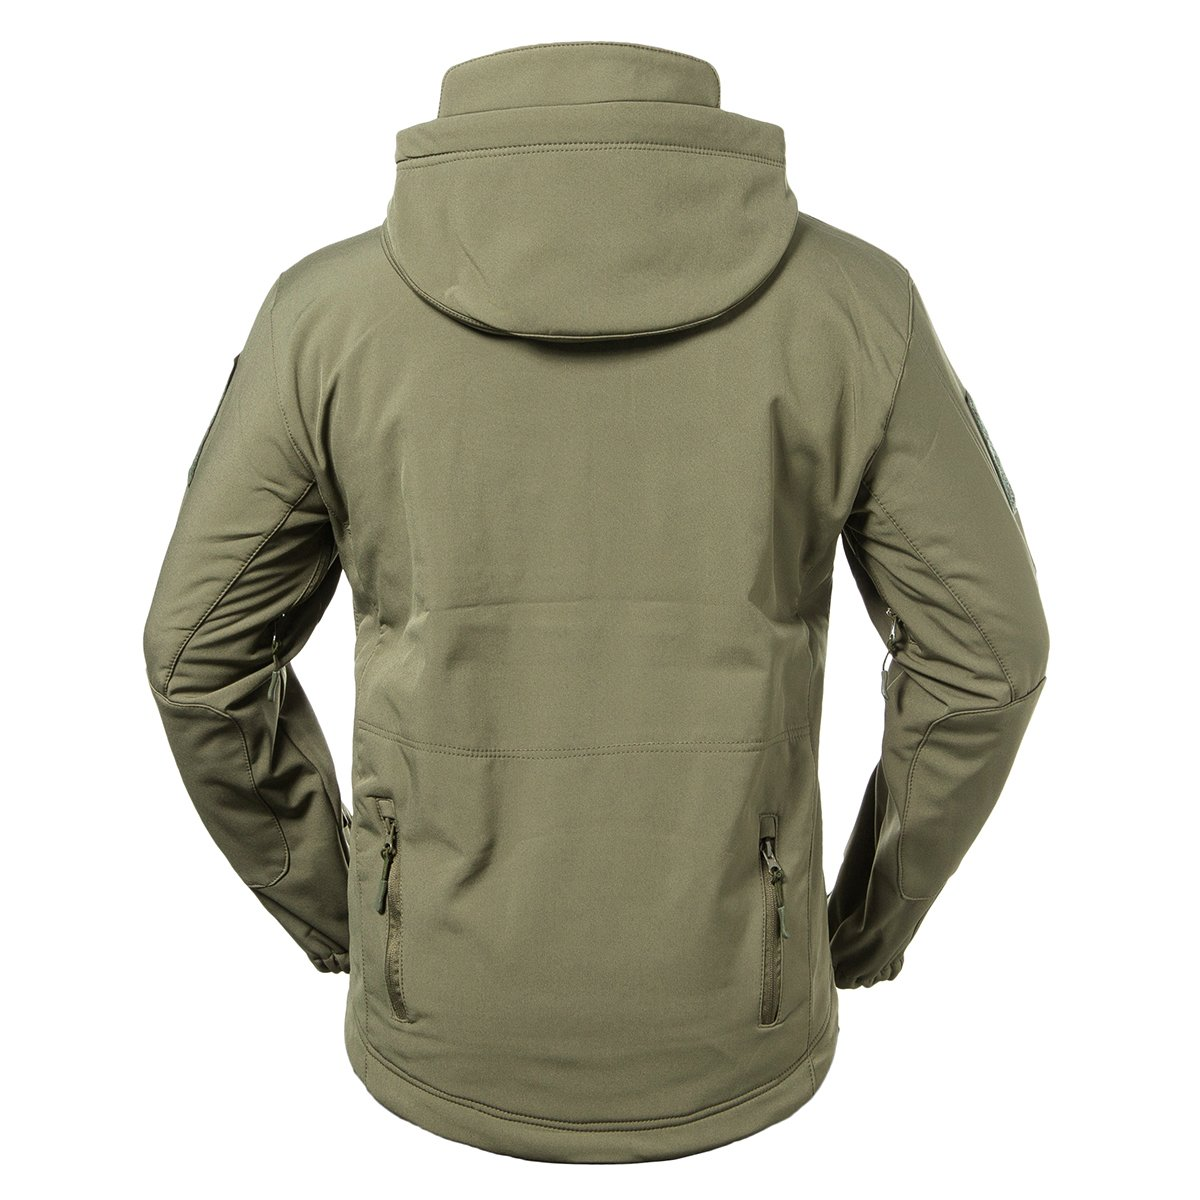 1c9dcc3ec48 Amazon.com  ReFire Gear Men s Soft Shell Military Tactical Jacket Outdoor  Camouflage Hunting Fleece Hooded Coat  Clothing